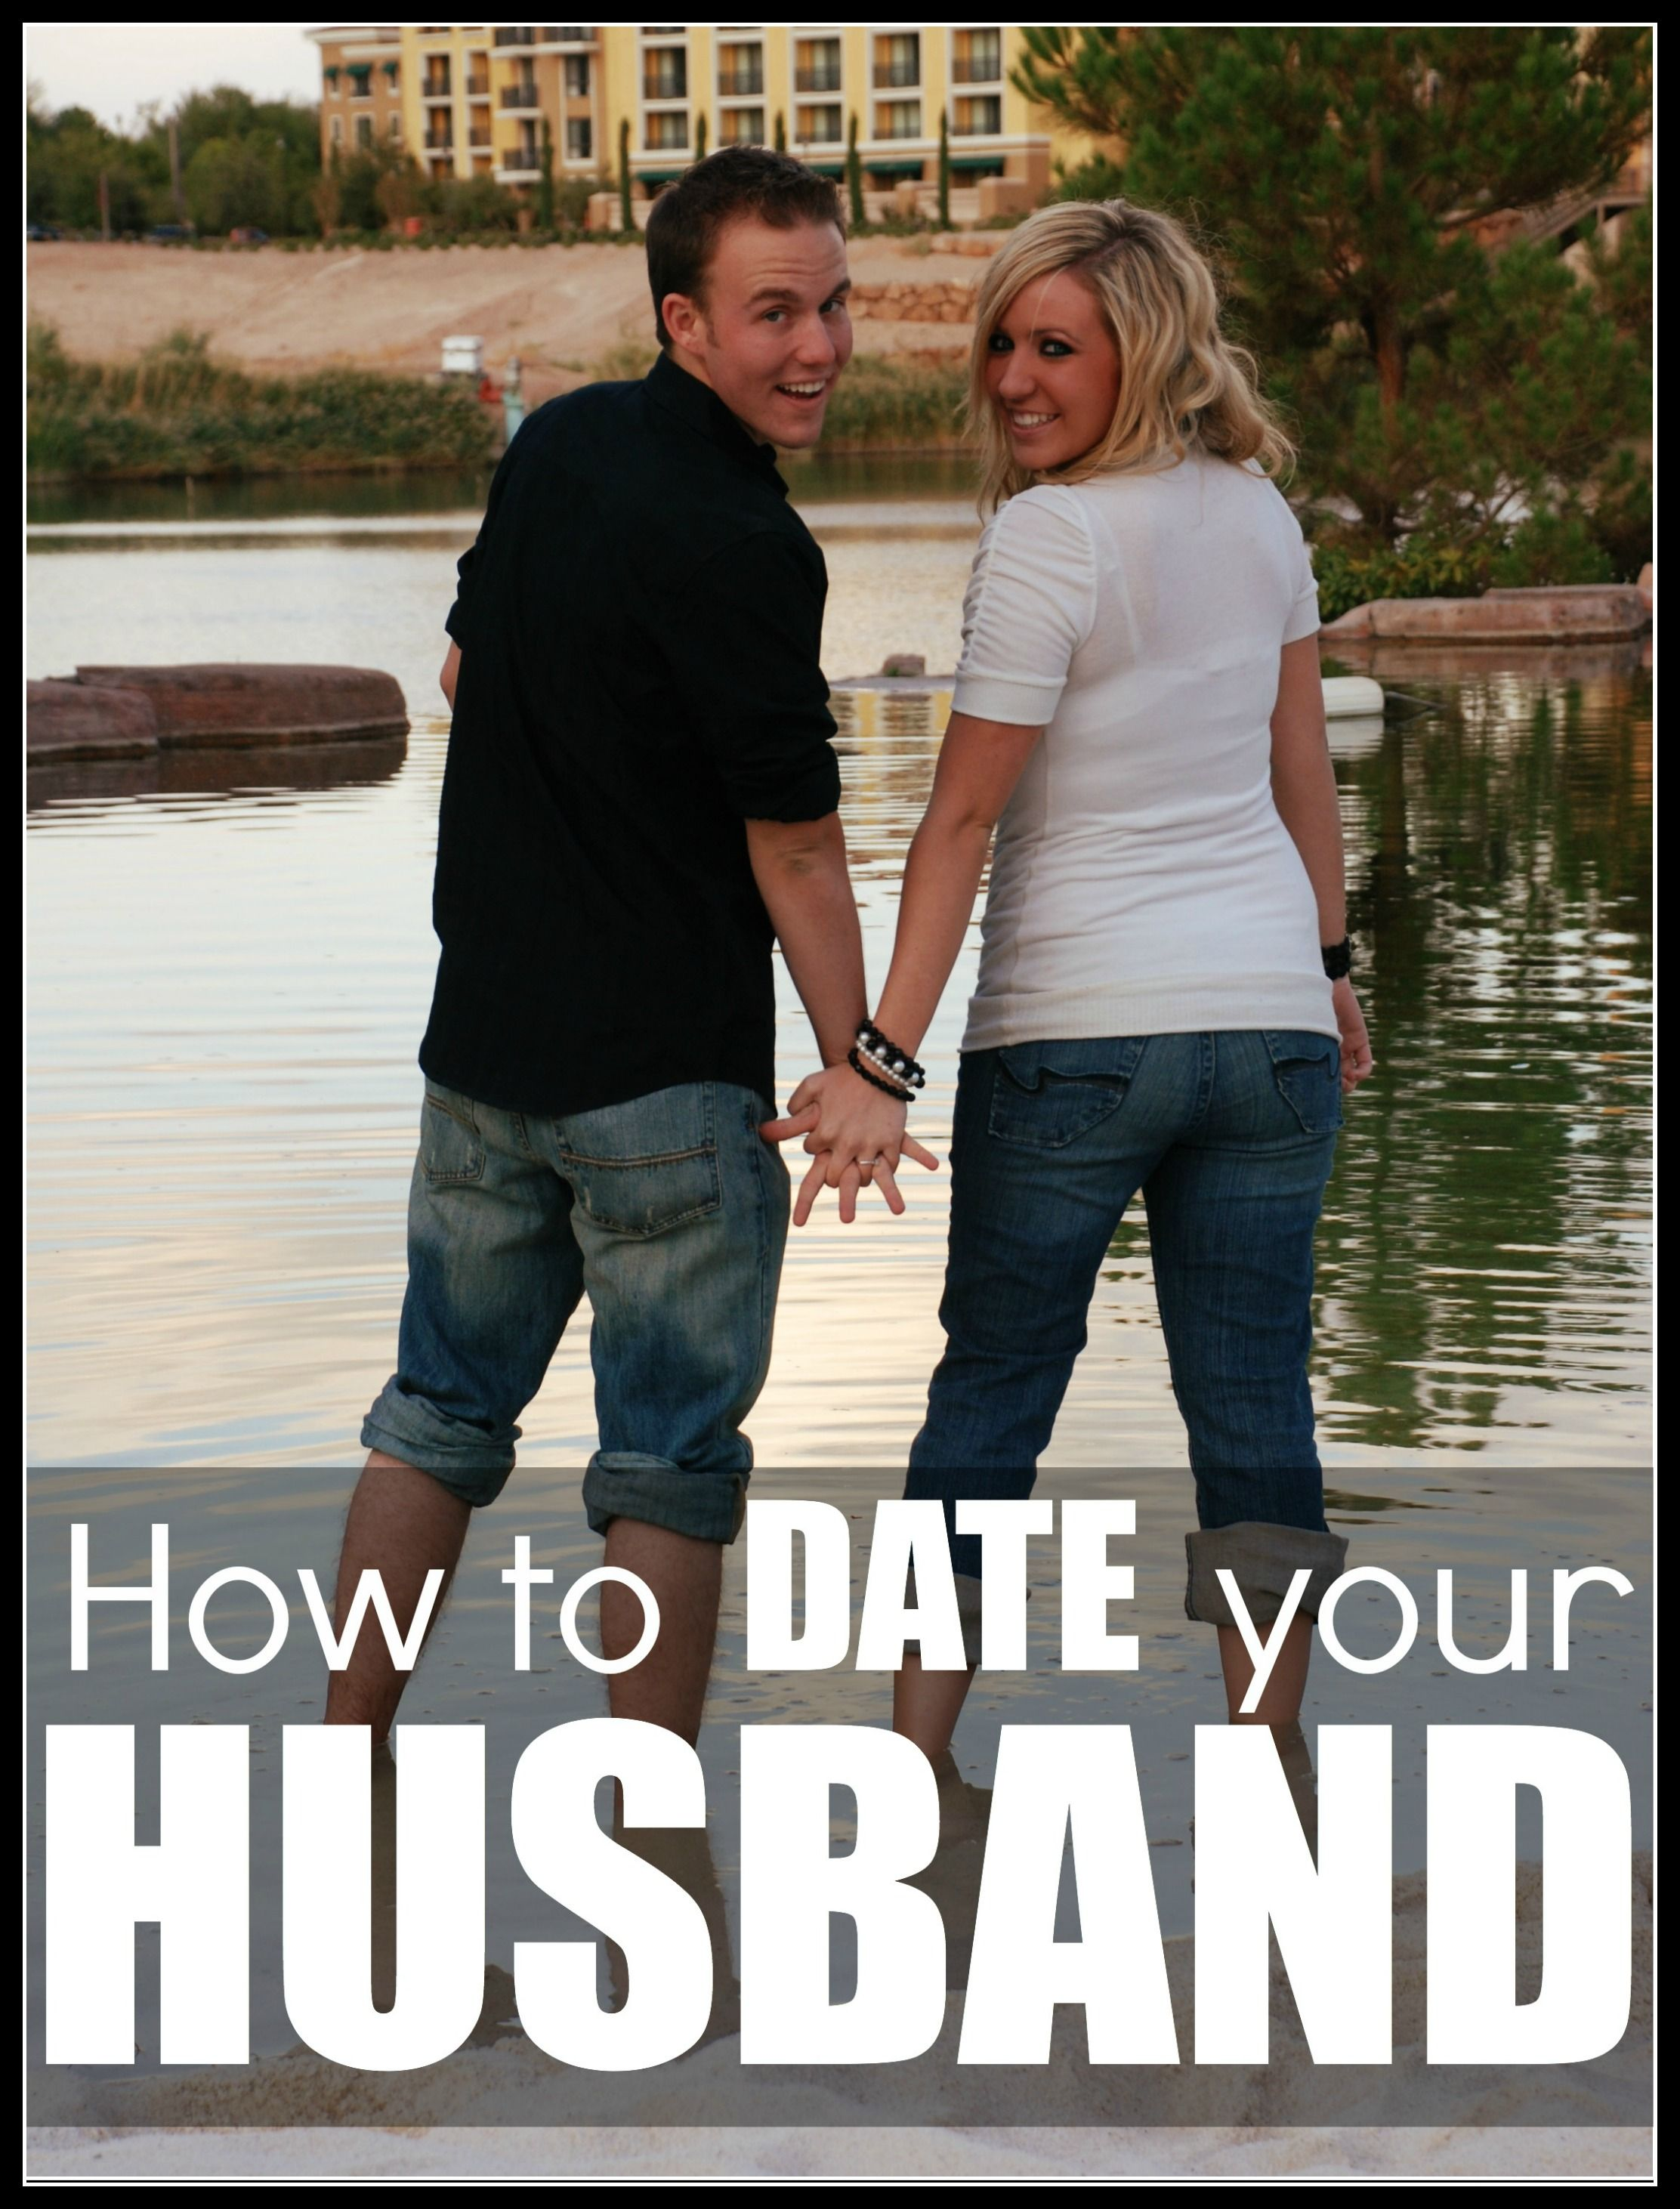 HOW TO DATE YOUR HUSBAND Husband, Love, marriage, Happy